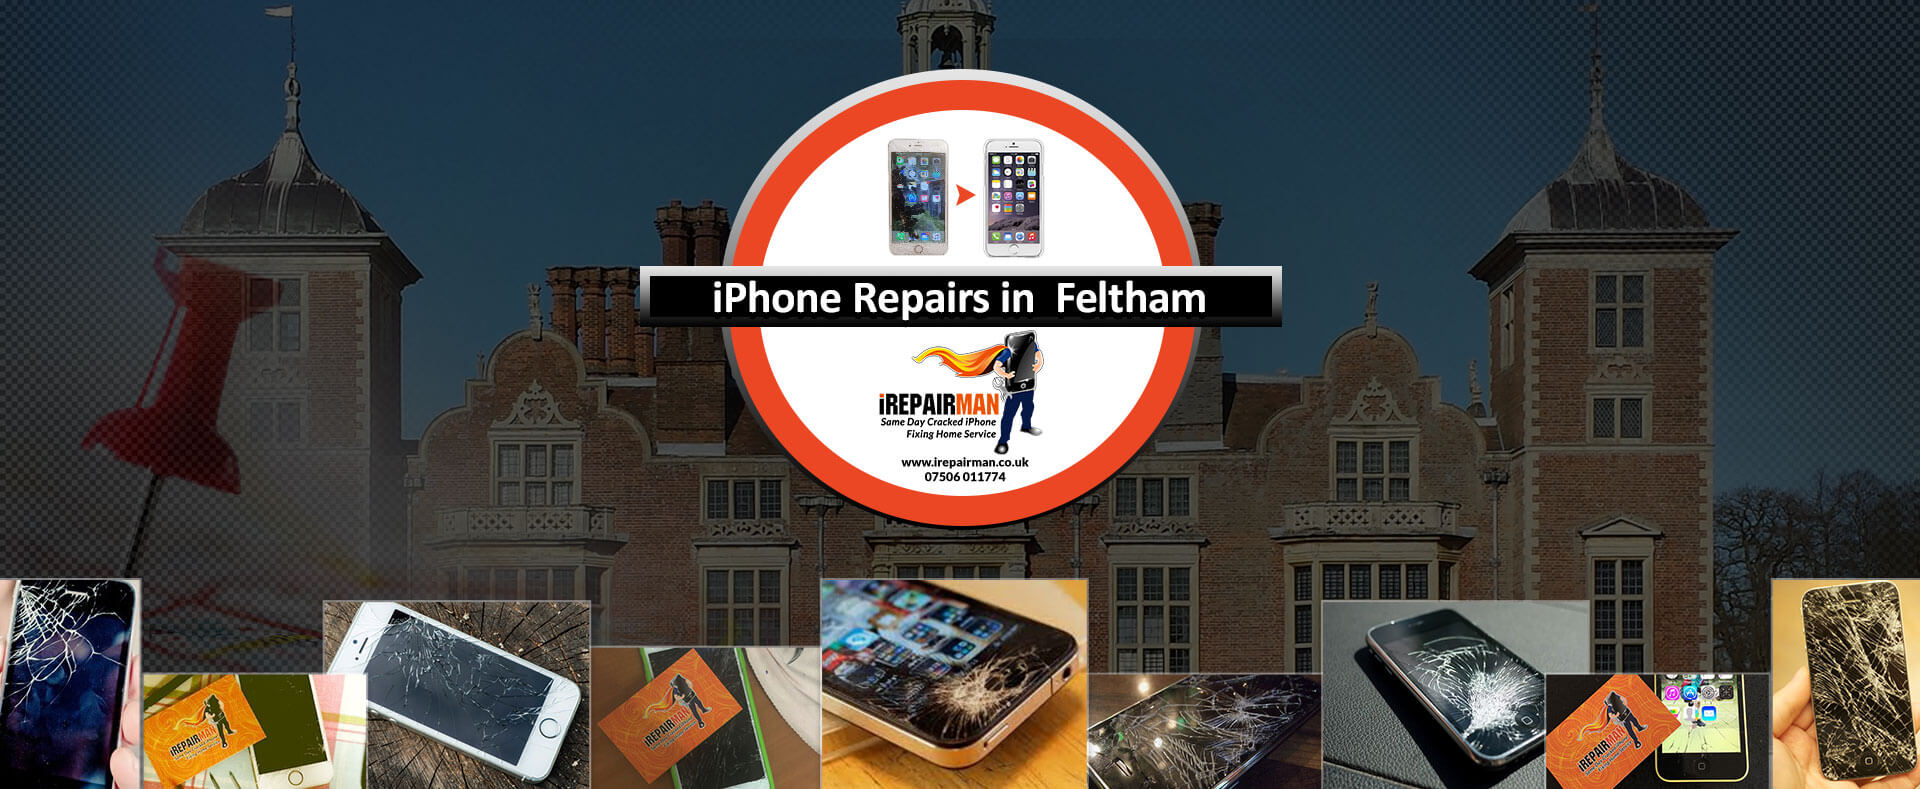 iPhone Repairs in Feltham